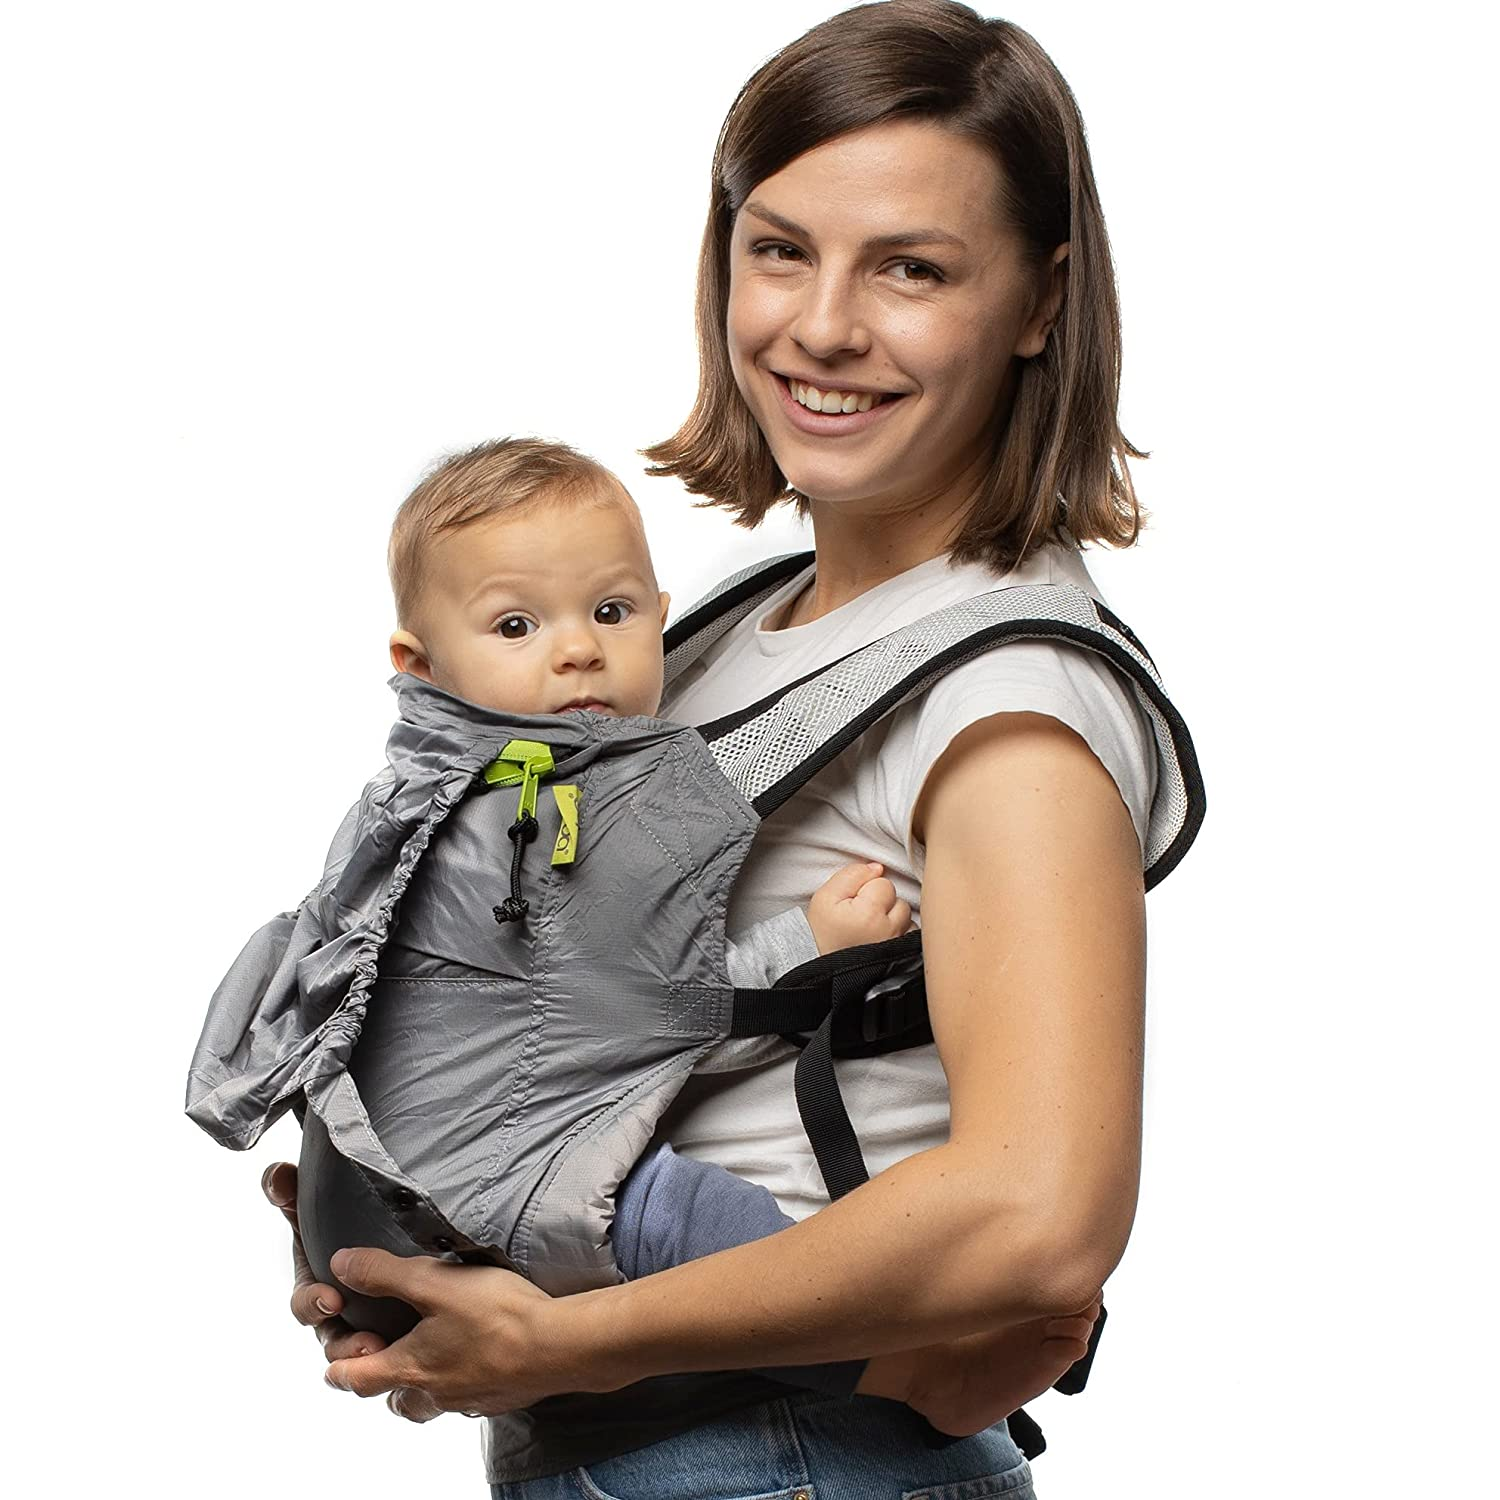 Boba Air Baby Carrier - Grey - Breathable mesh Shoulder Straps, Padded Leg Openings for Extended Support and Comfort